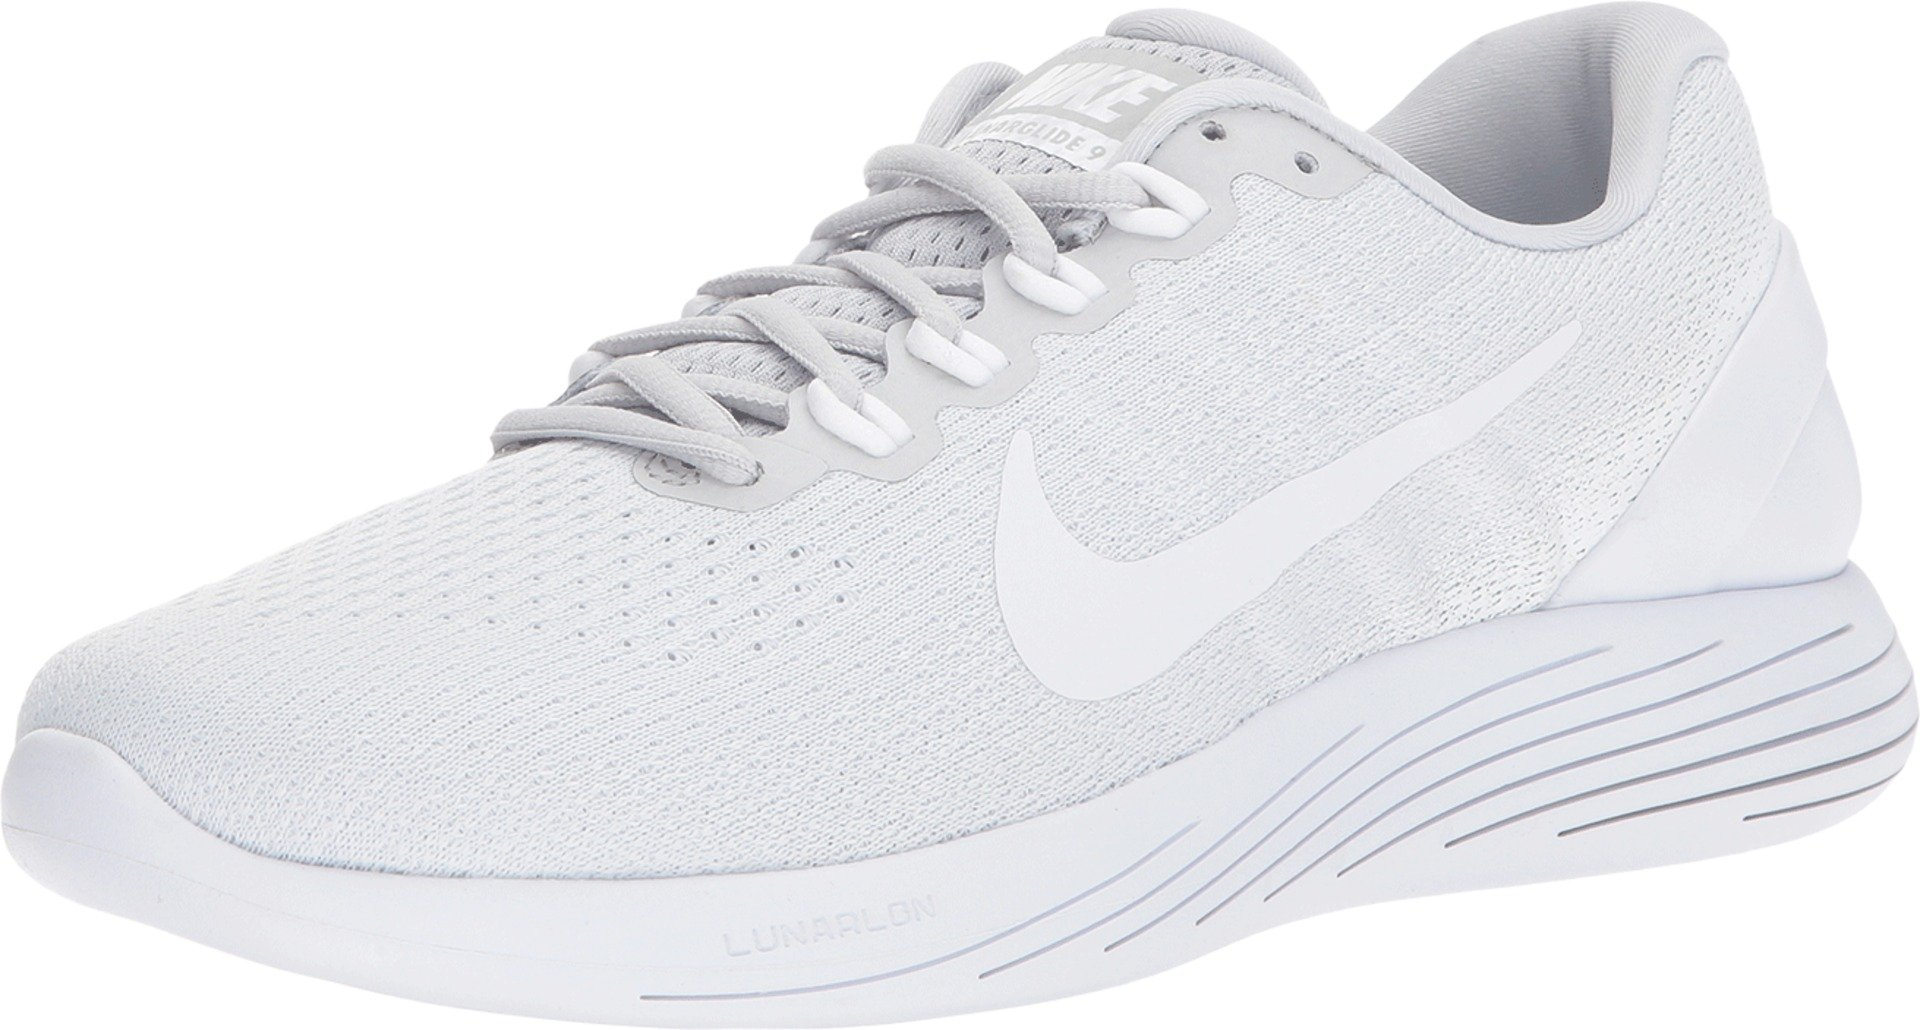 b38d78cd328d Galleon - Nike Lunarglide 9 Running Shoe